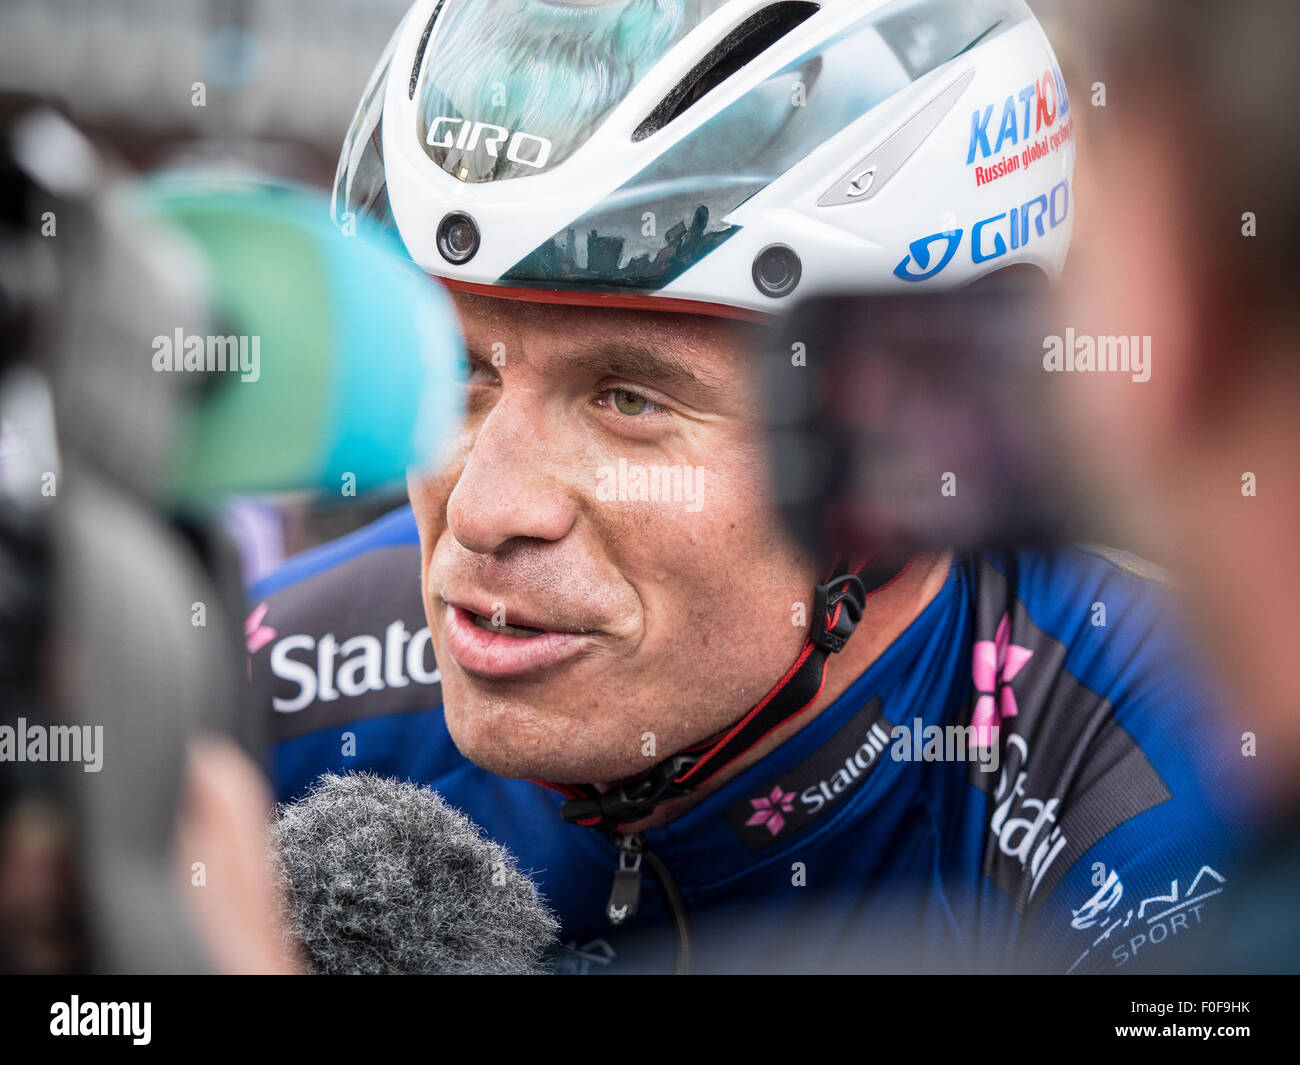 Setermoen, Norway. 14th August 2015. Alexander Kristoff from Norway cycling for Team Katusha is being interviewed - Stock Image